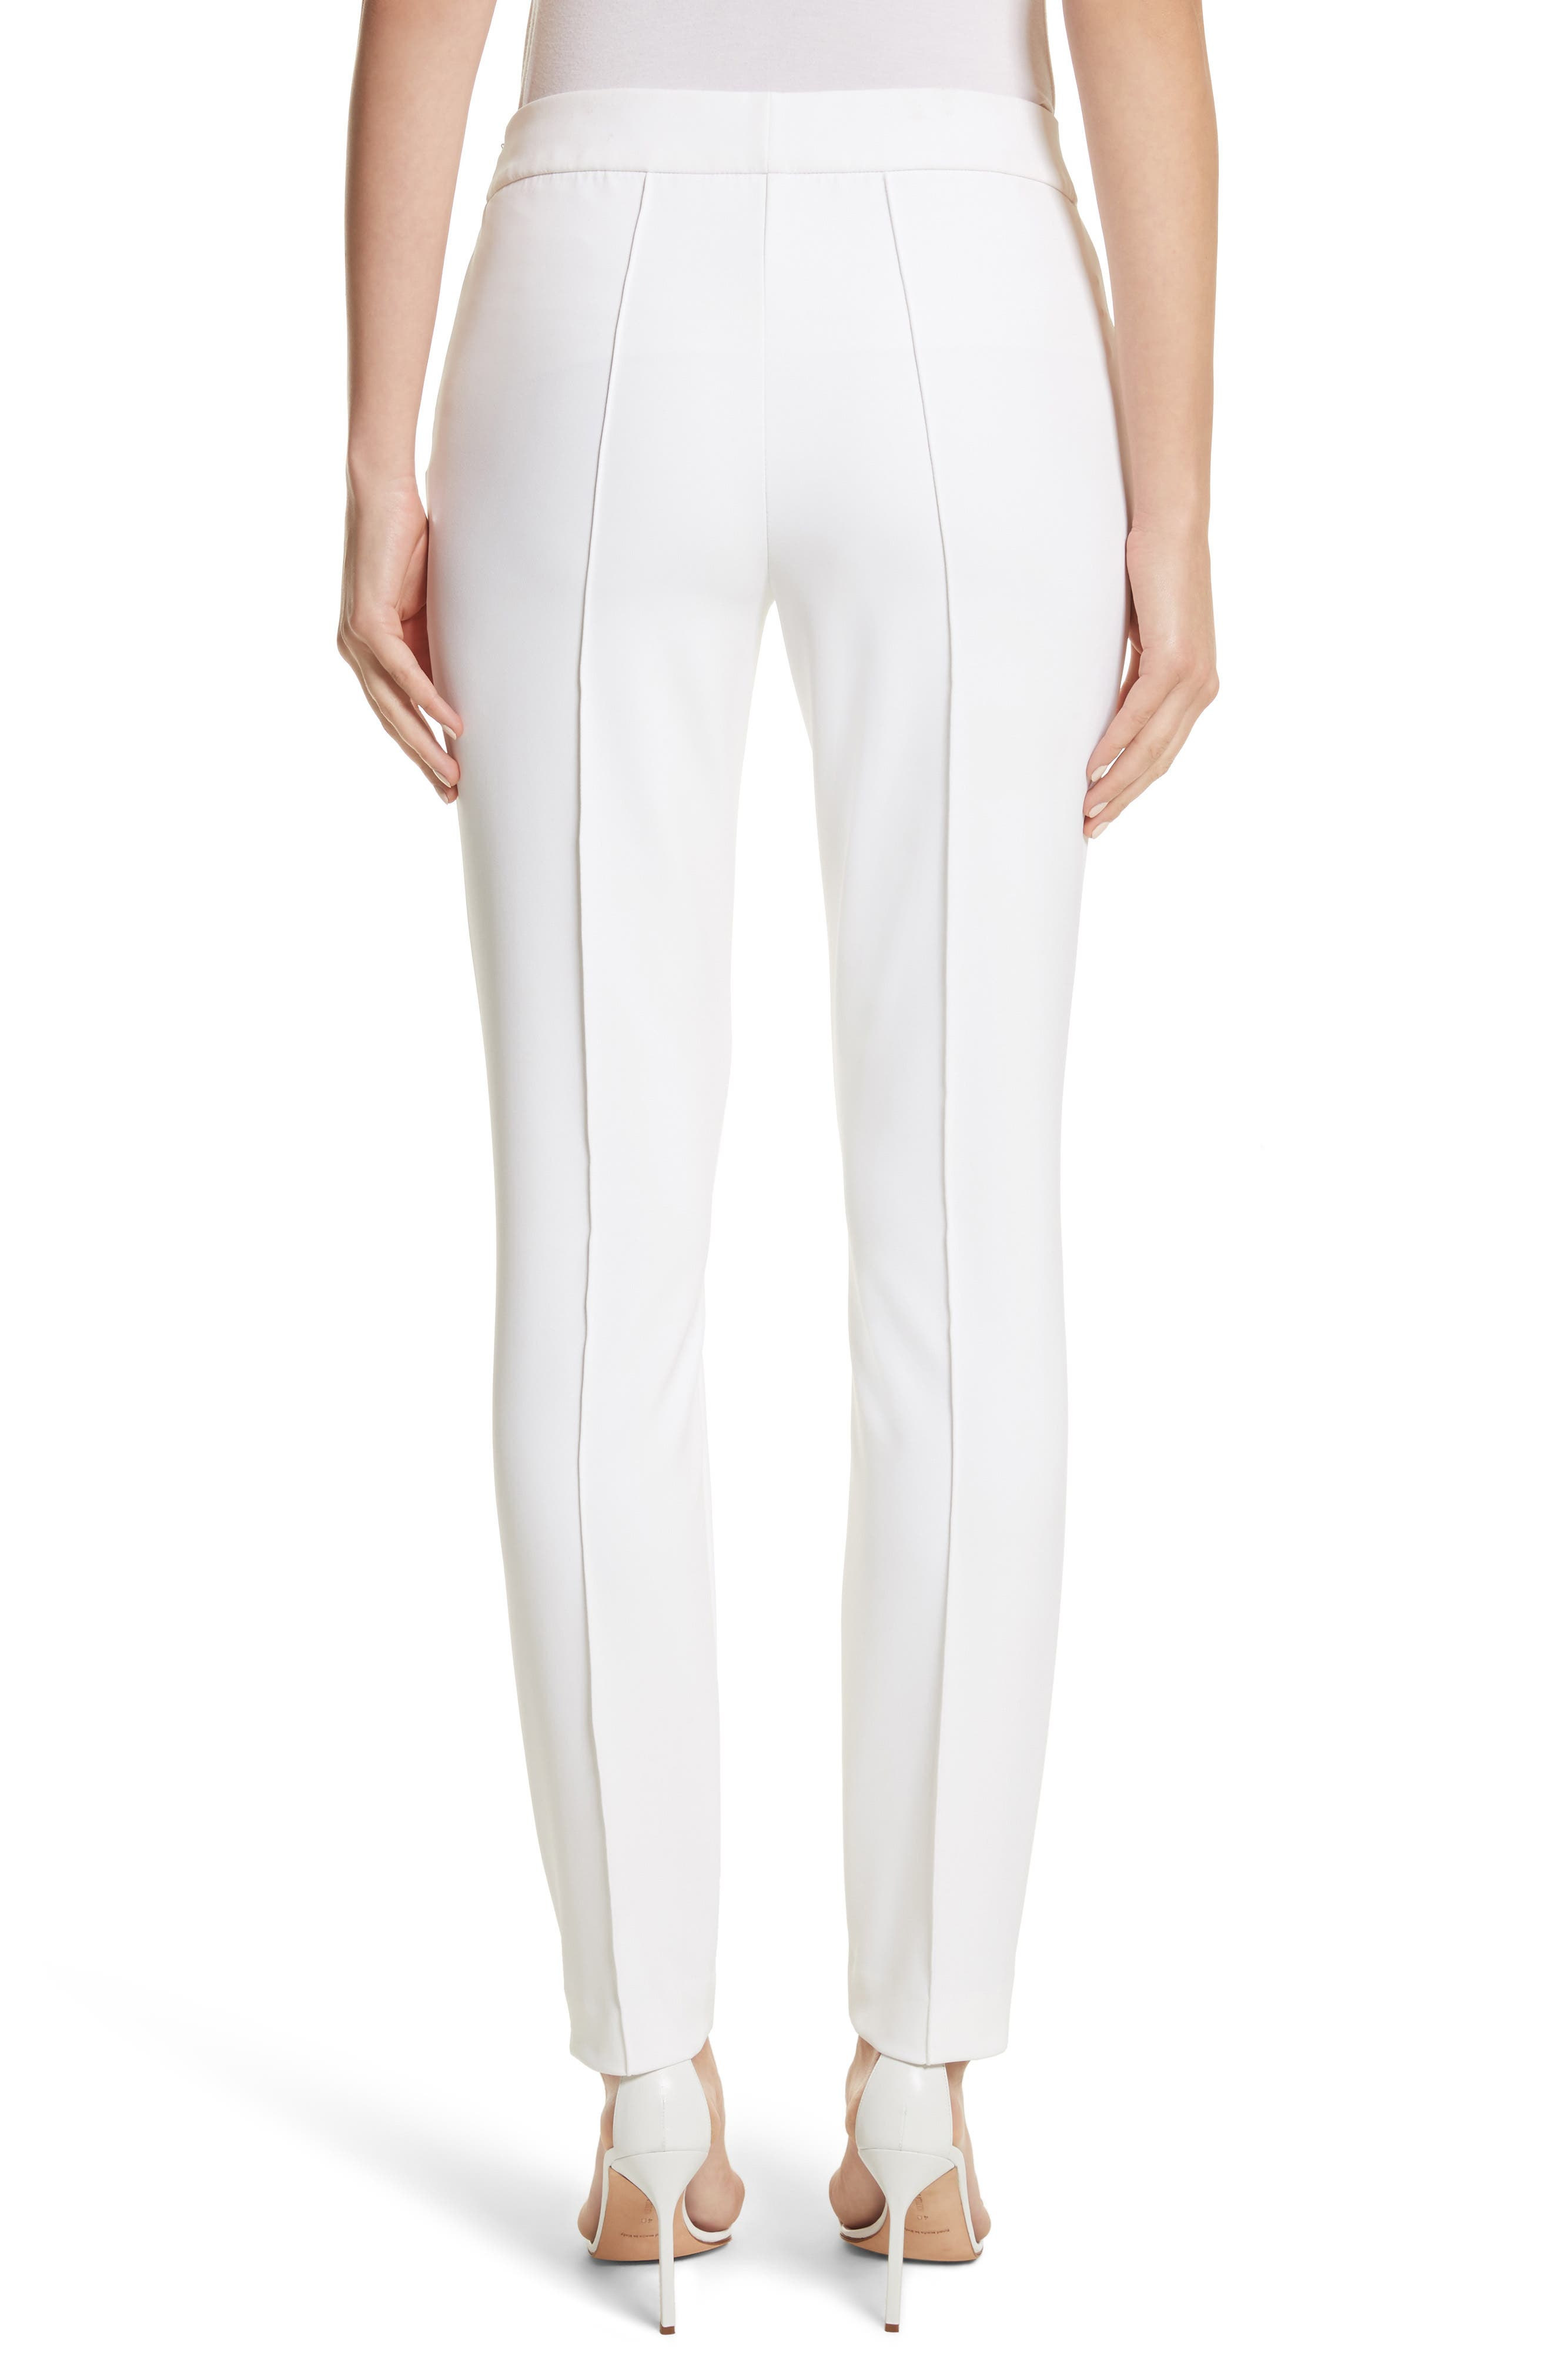 'Gramercy' Acclaimed Stretch Pants,                             Alternate thumbnail 2, color,                             WHITE